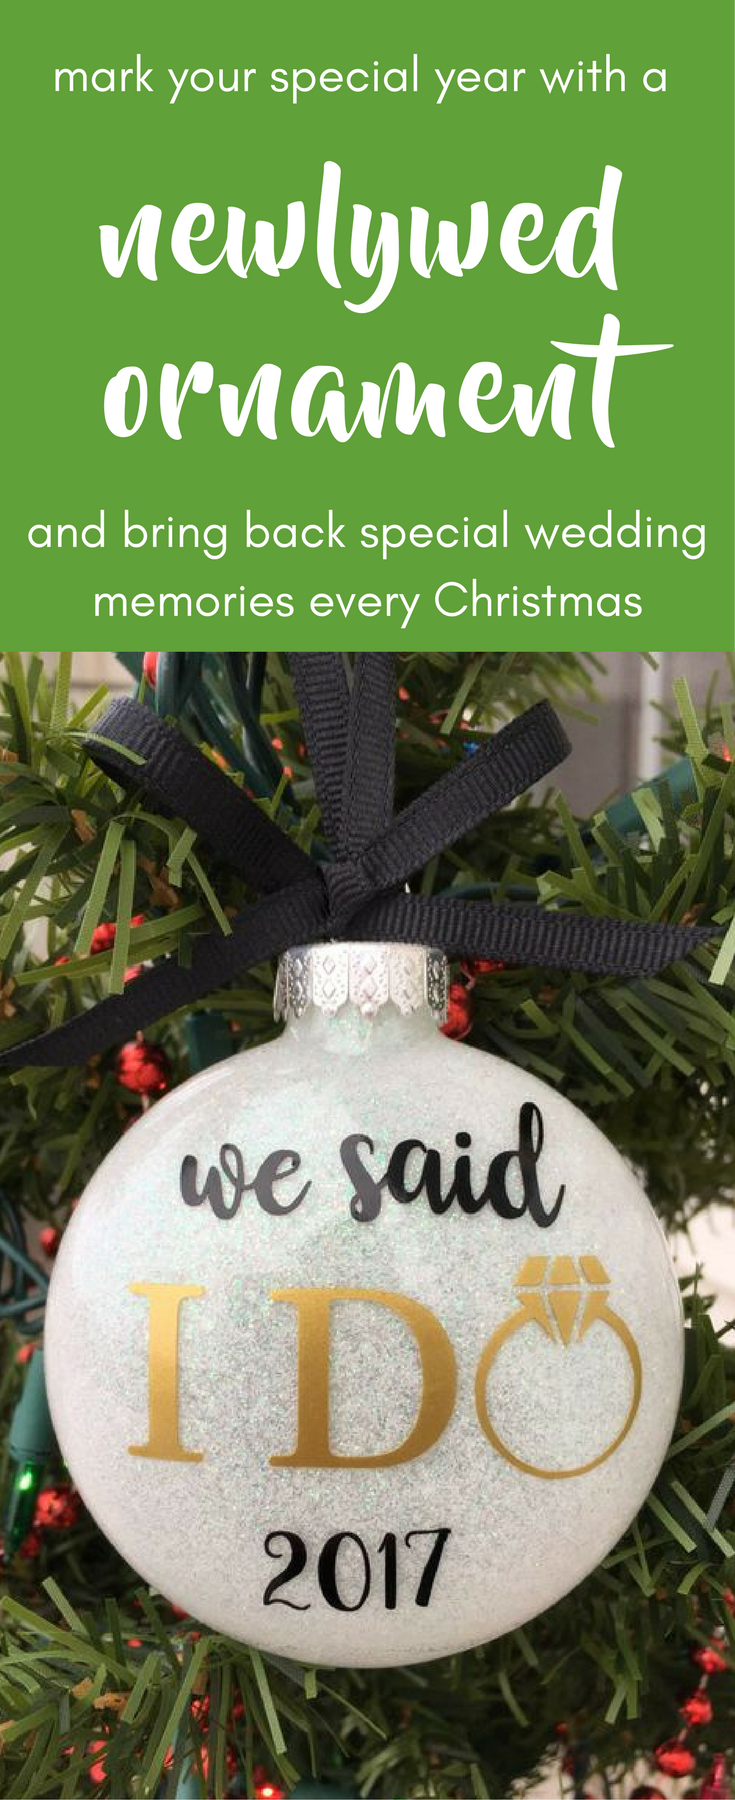 Our First Christmas Ornament Just Married Ornament Wedding Christmas Orname Our First Christmas Ornament Wedding Christmas Ornaments First Christmas Ornament